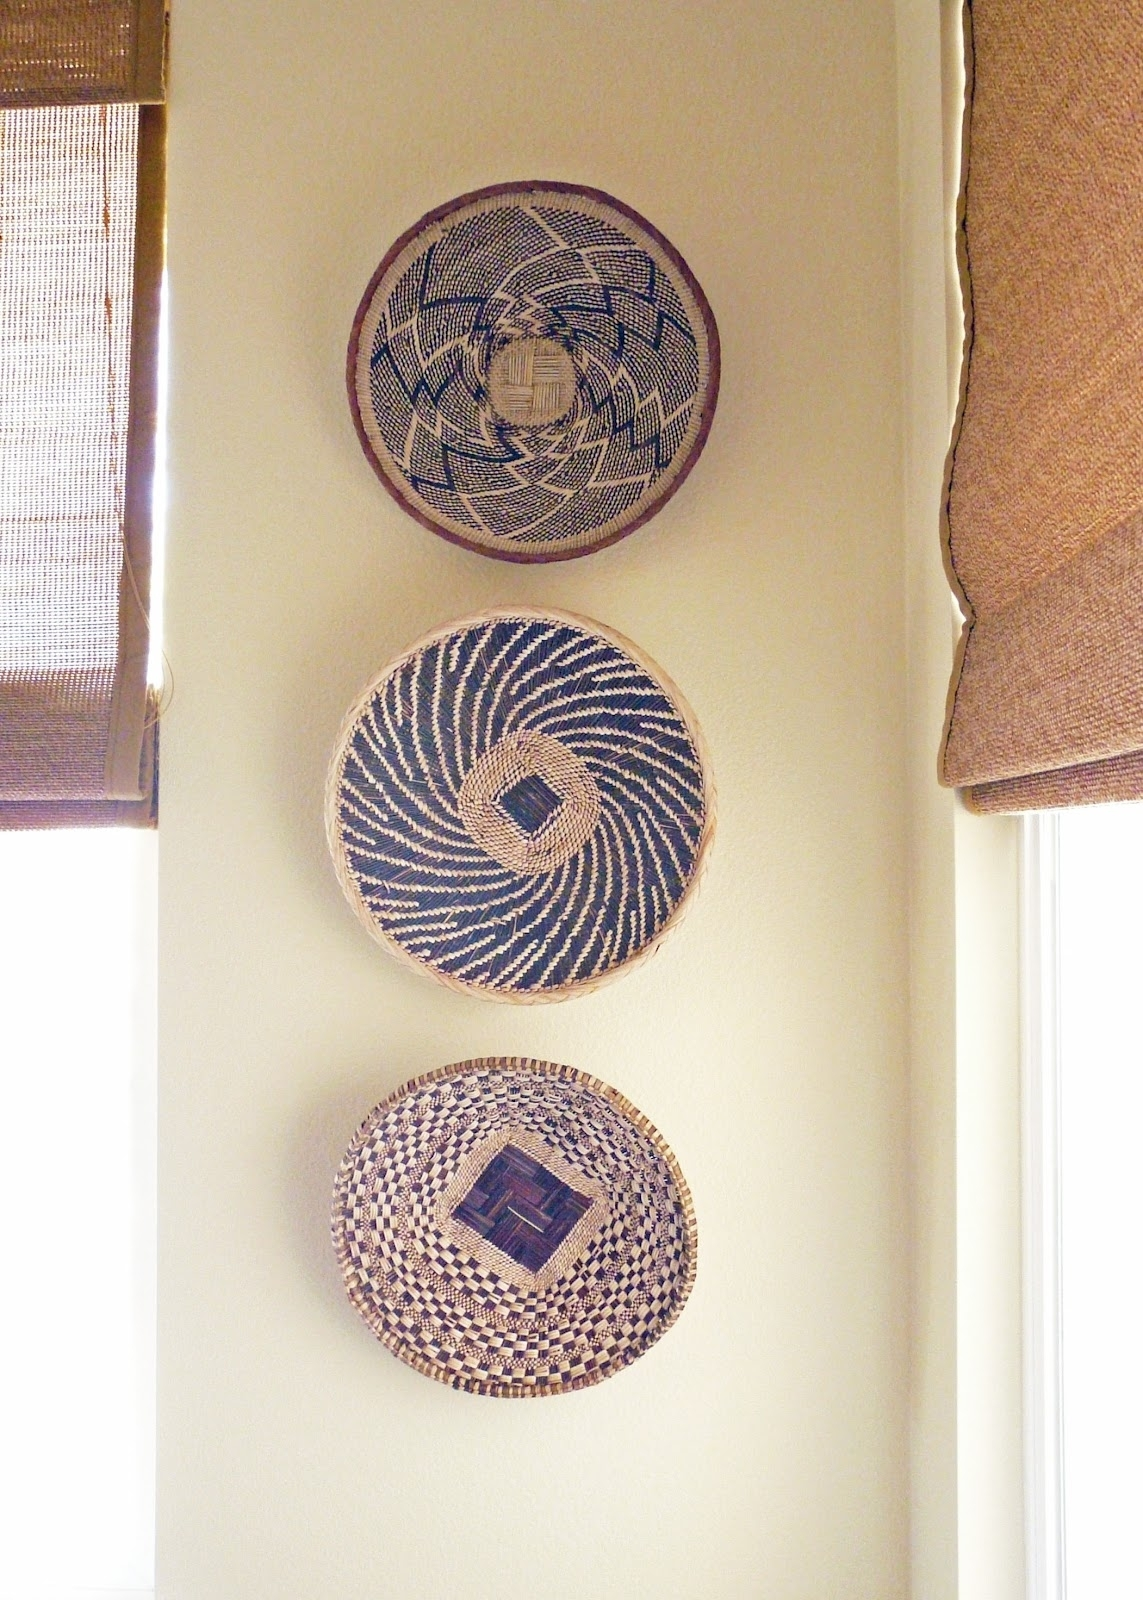 Home] African Basket Wall Decor Pertaining To 2017 African Wall Art (View 12 of 15)